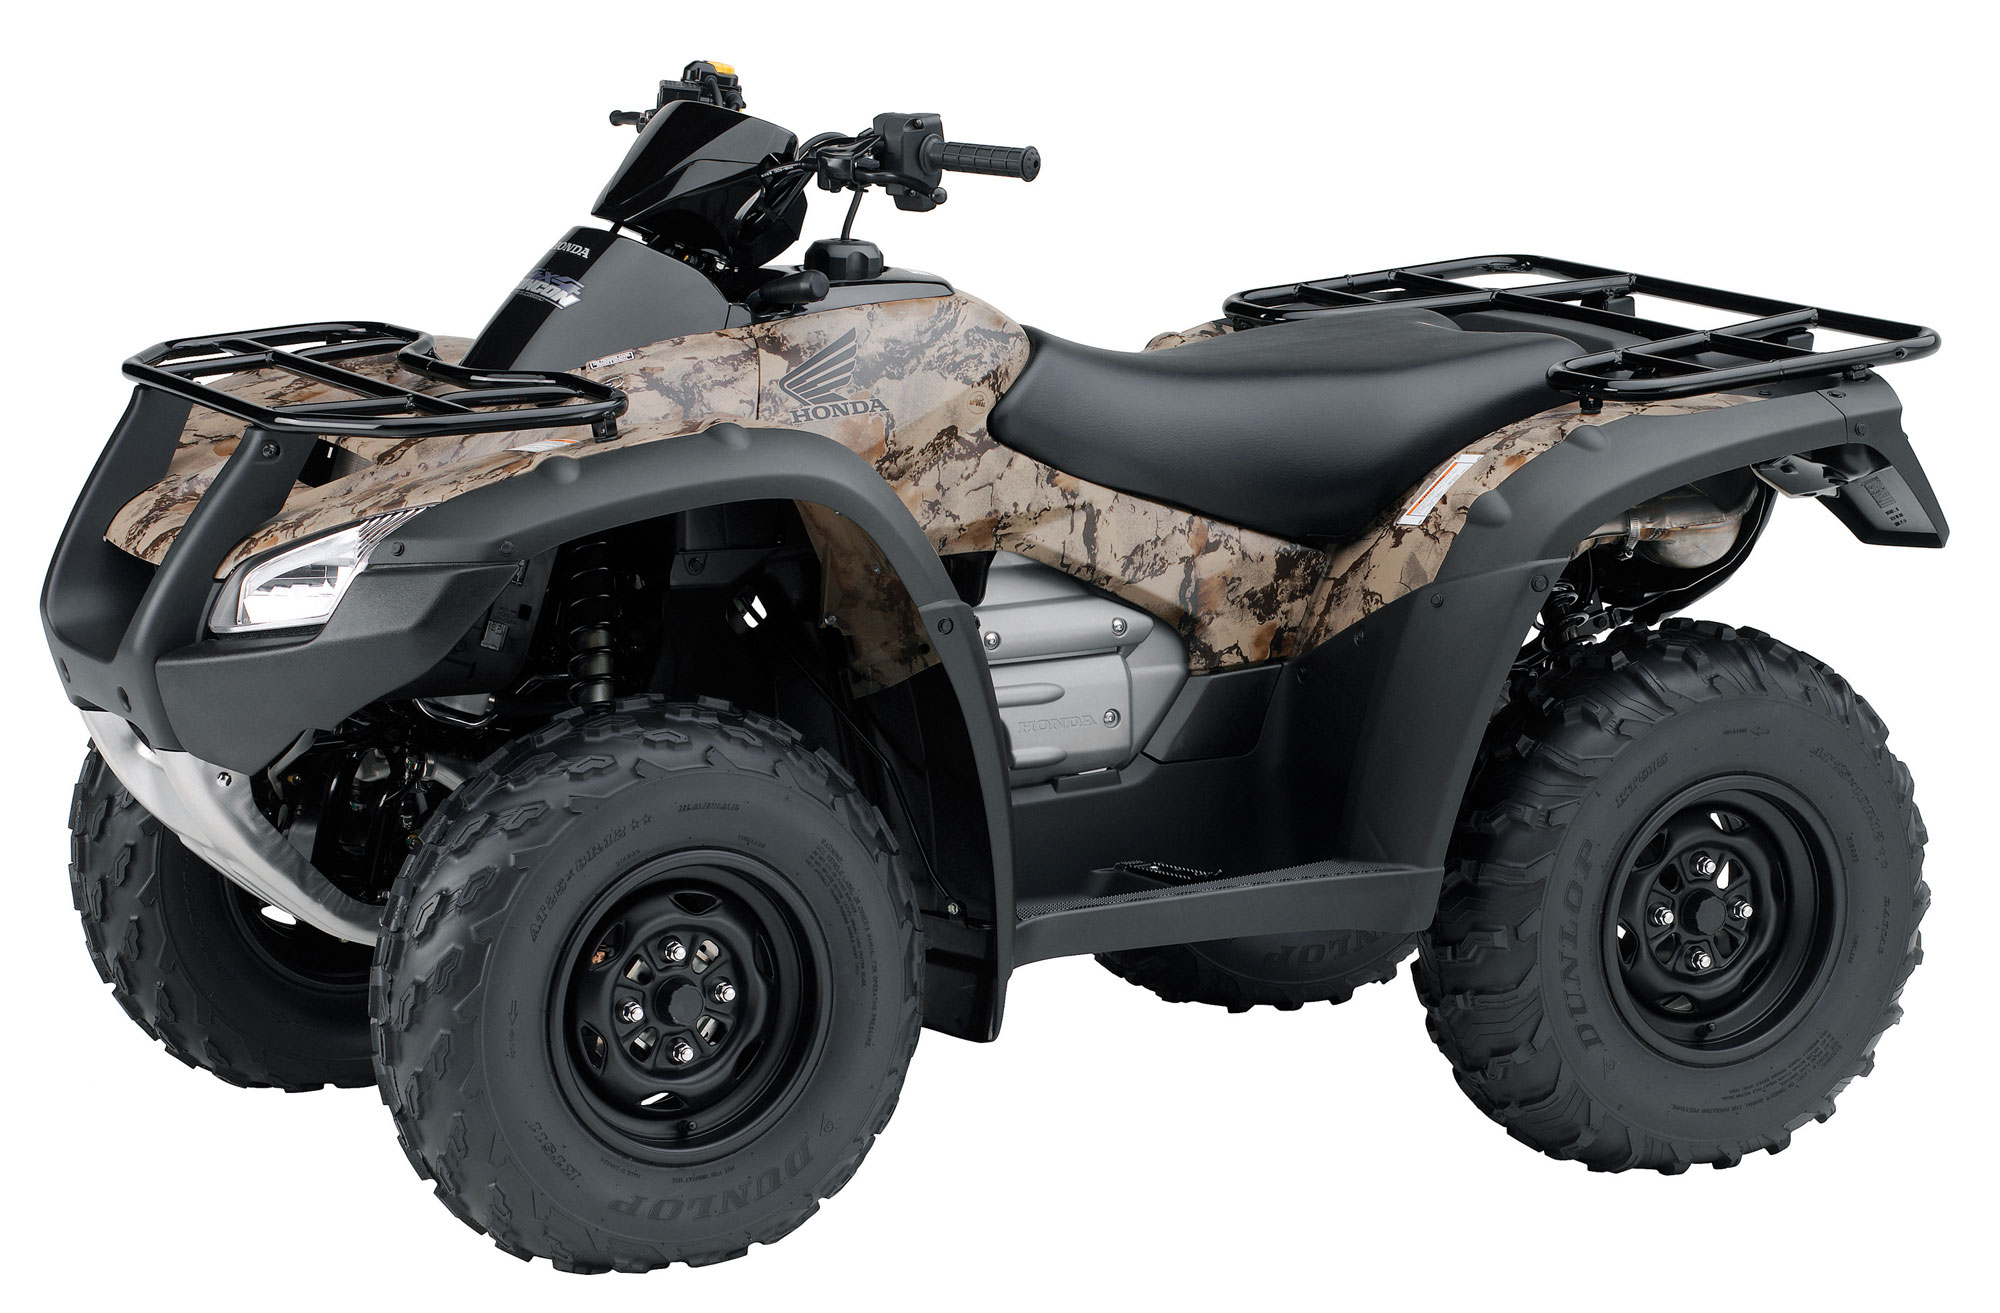 2013 honda fourtrax rincon trx680fa review. Black Bedroom Furniture Sets. Home Design Ideas